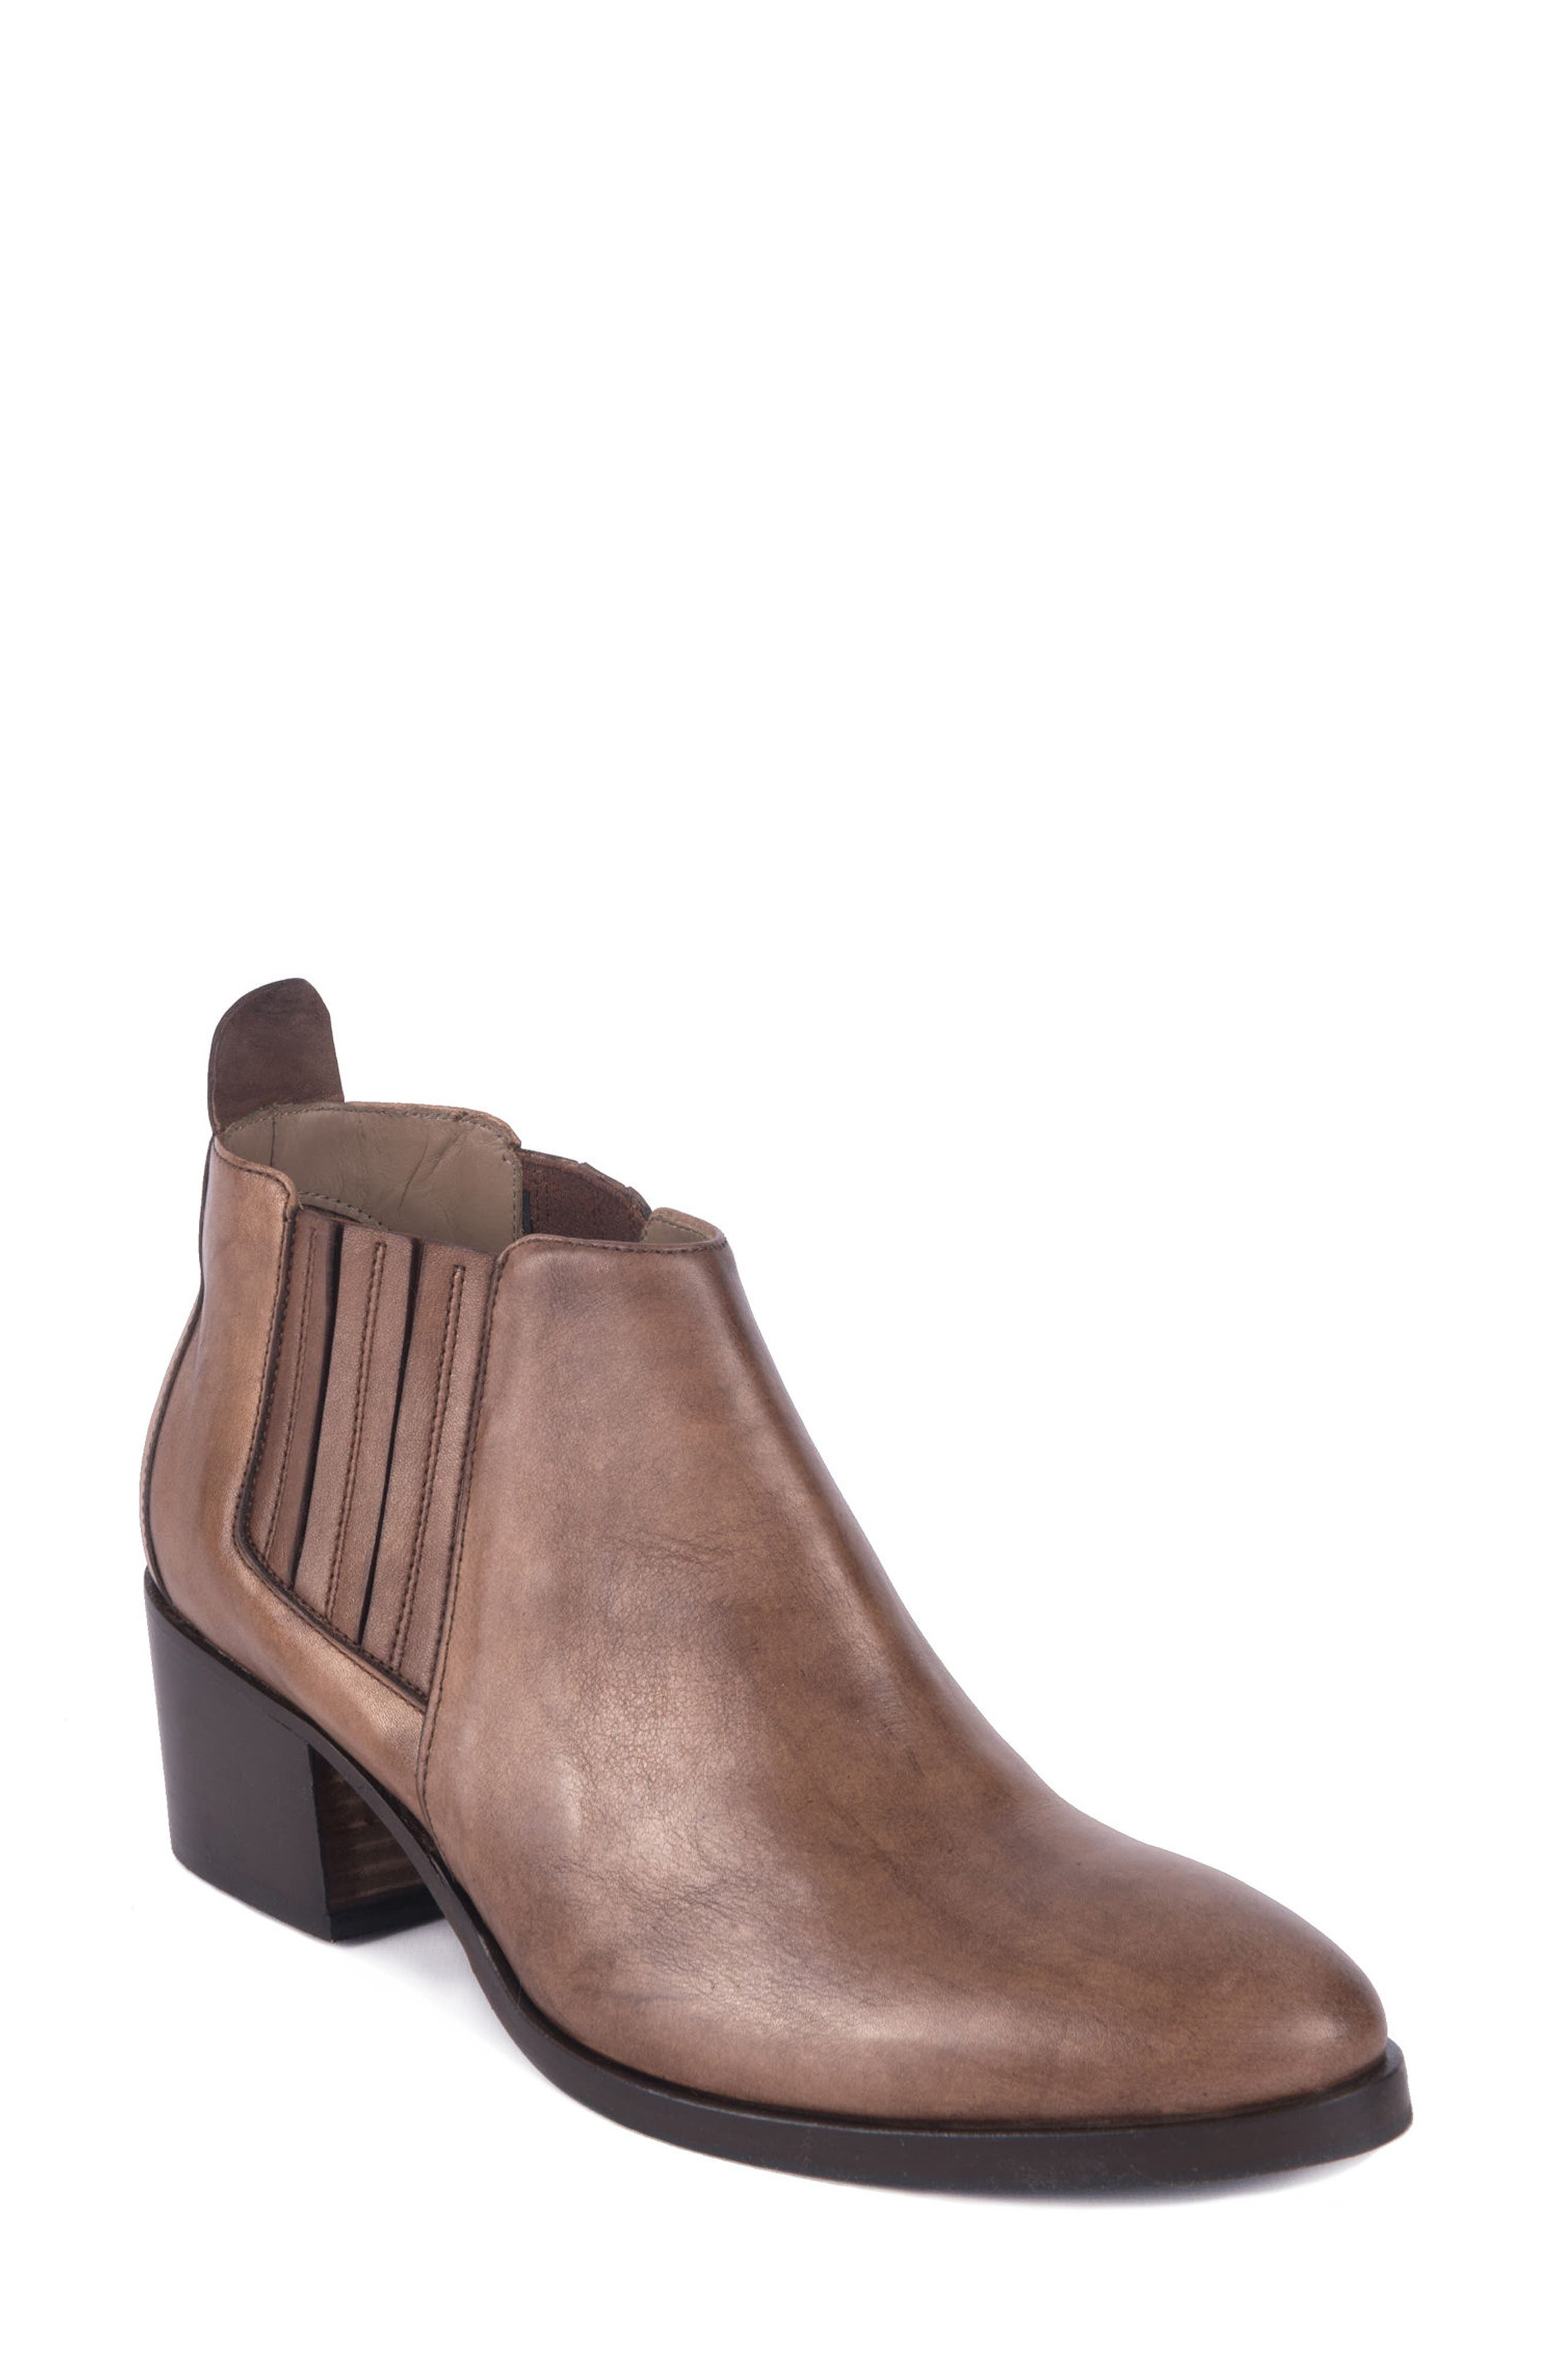 Corsini Water-Resistant Pull On Bootie,                             Main thumbnail 1, color,                             Marrone Leather